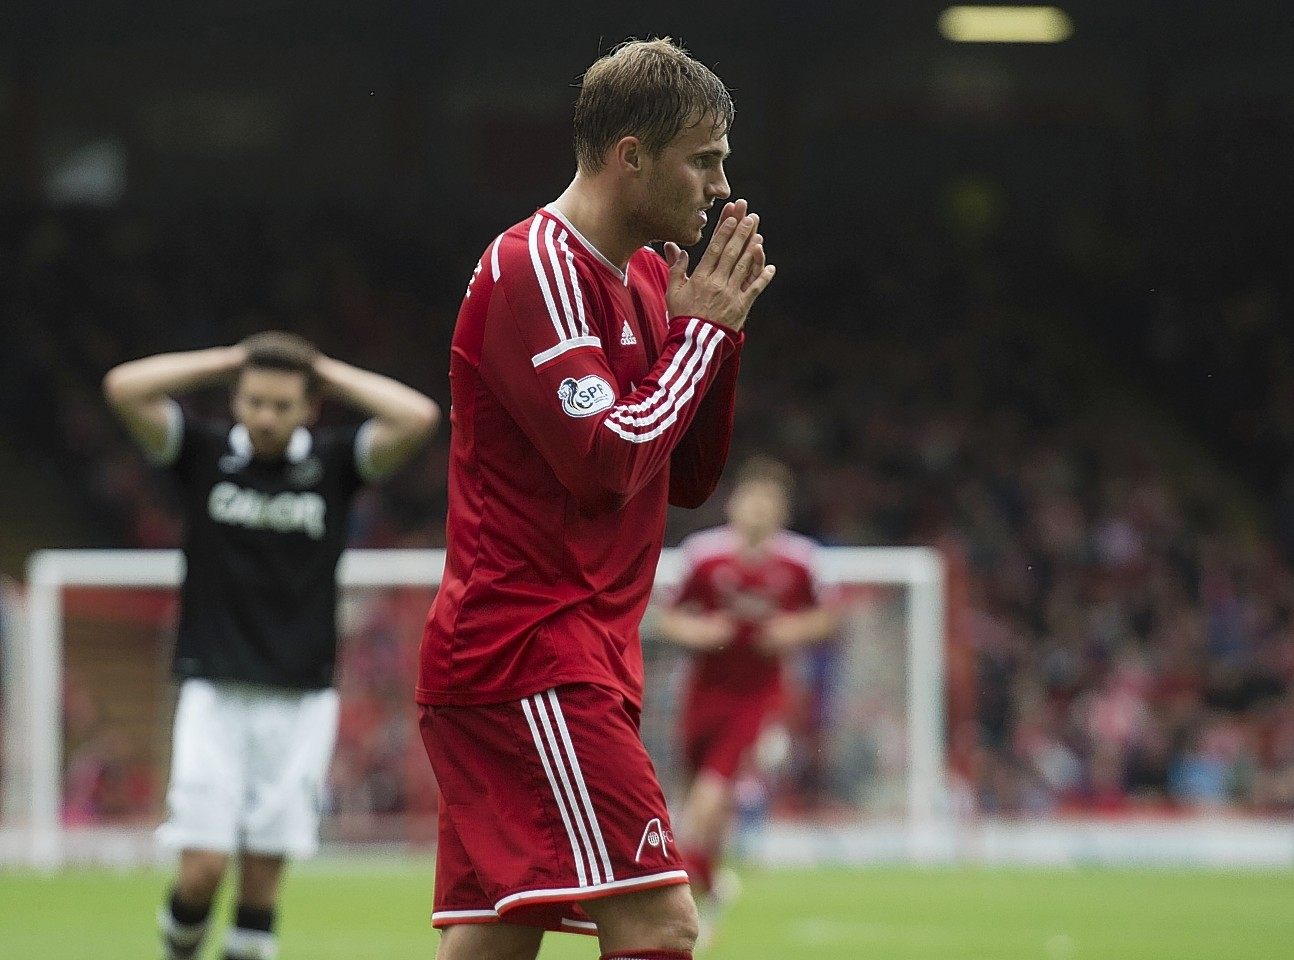 David Goodwillie couldn't find any sort of break through for the Dons